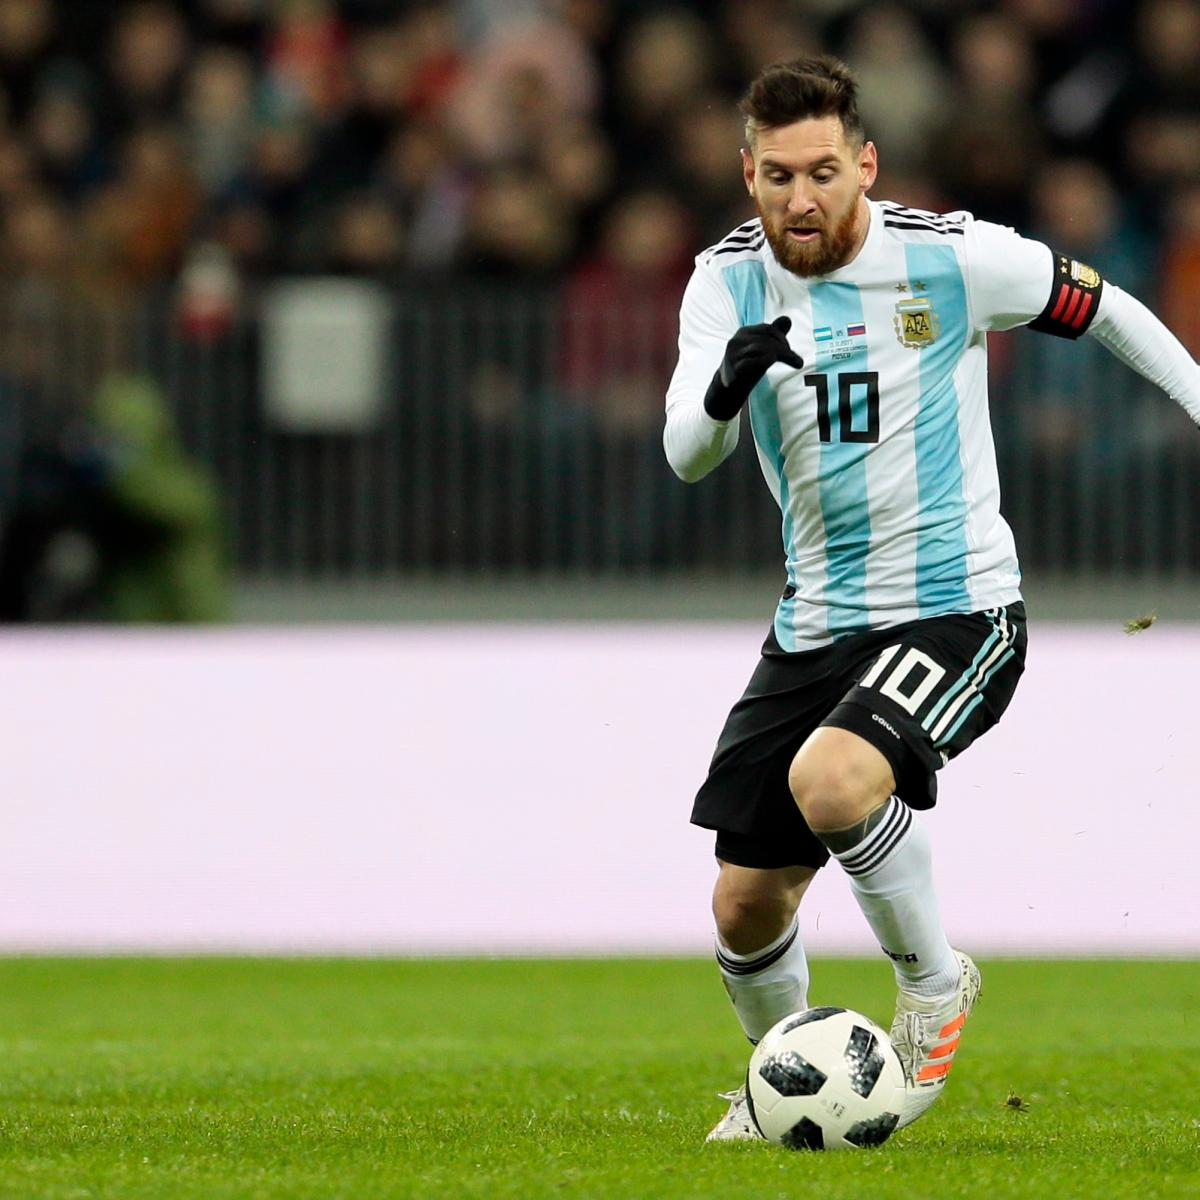 World Cup 2018: Full Group Predictions, TV Schedule and Live-Stream Info